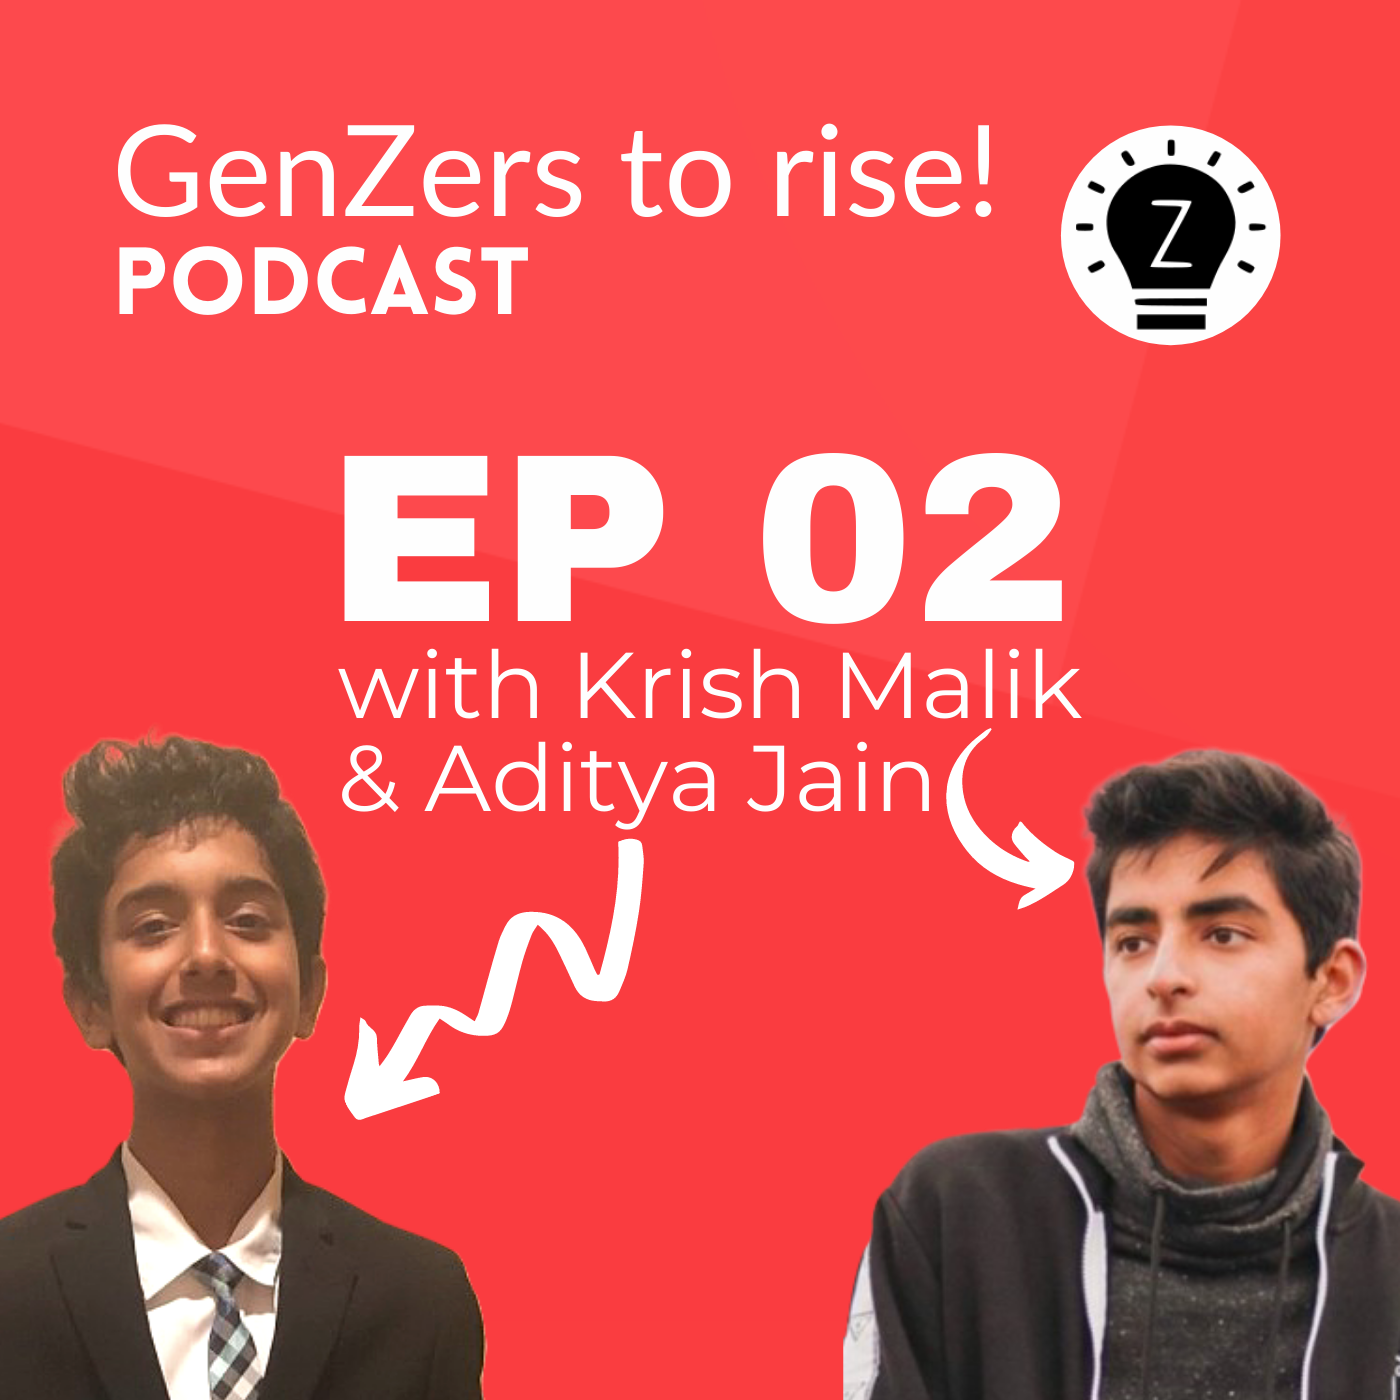 Ep 2 of GenZers to rise! podcast: Using technology to make opportunities more accessible with Revoteen